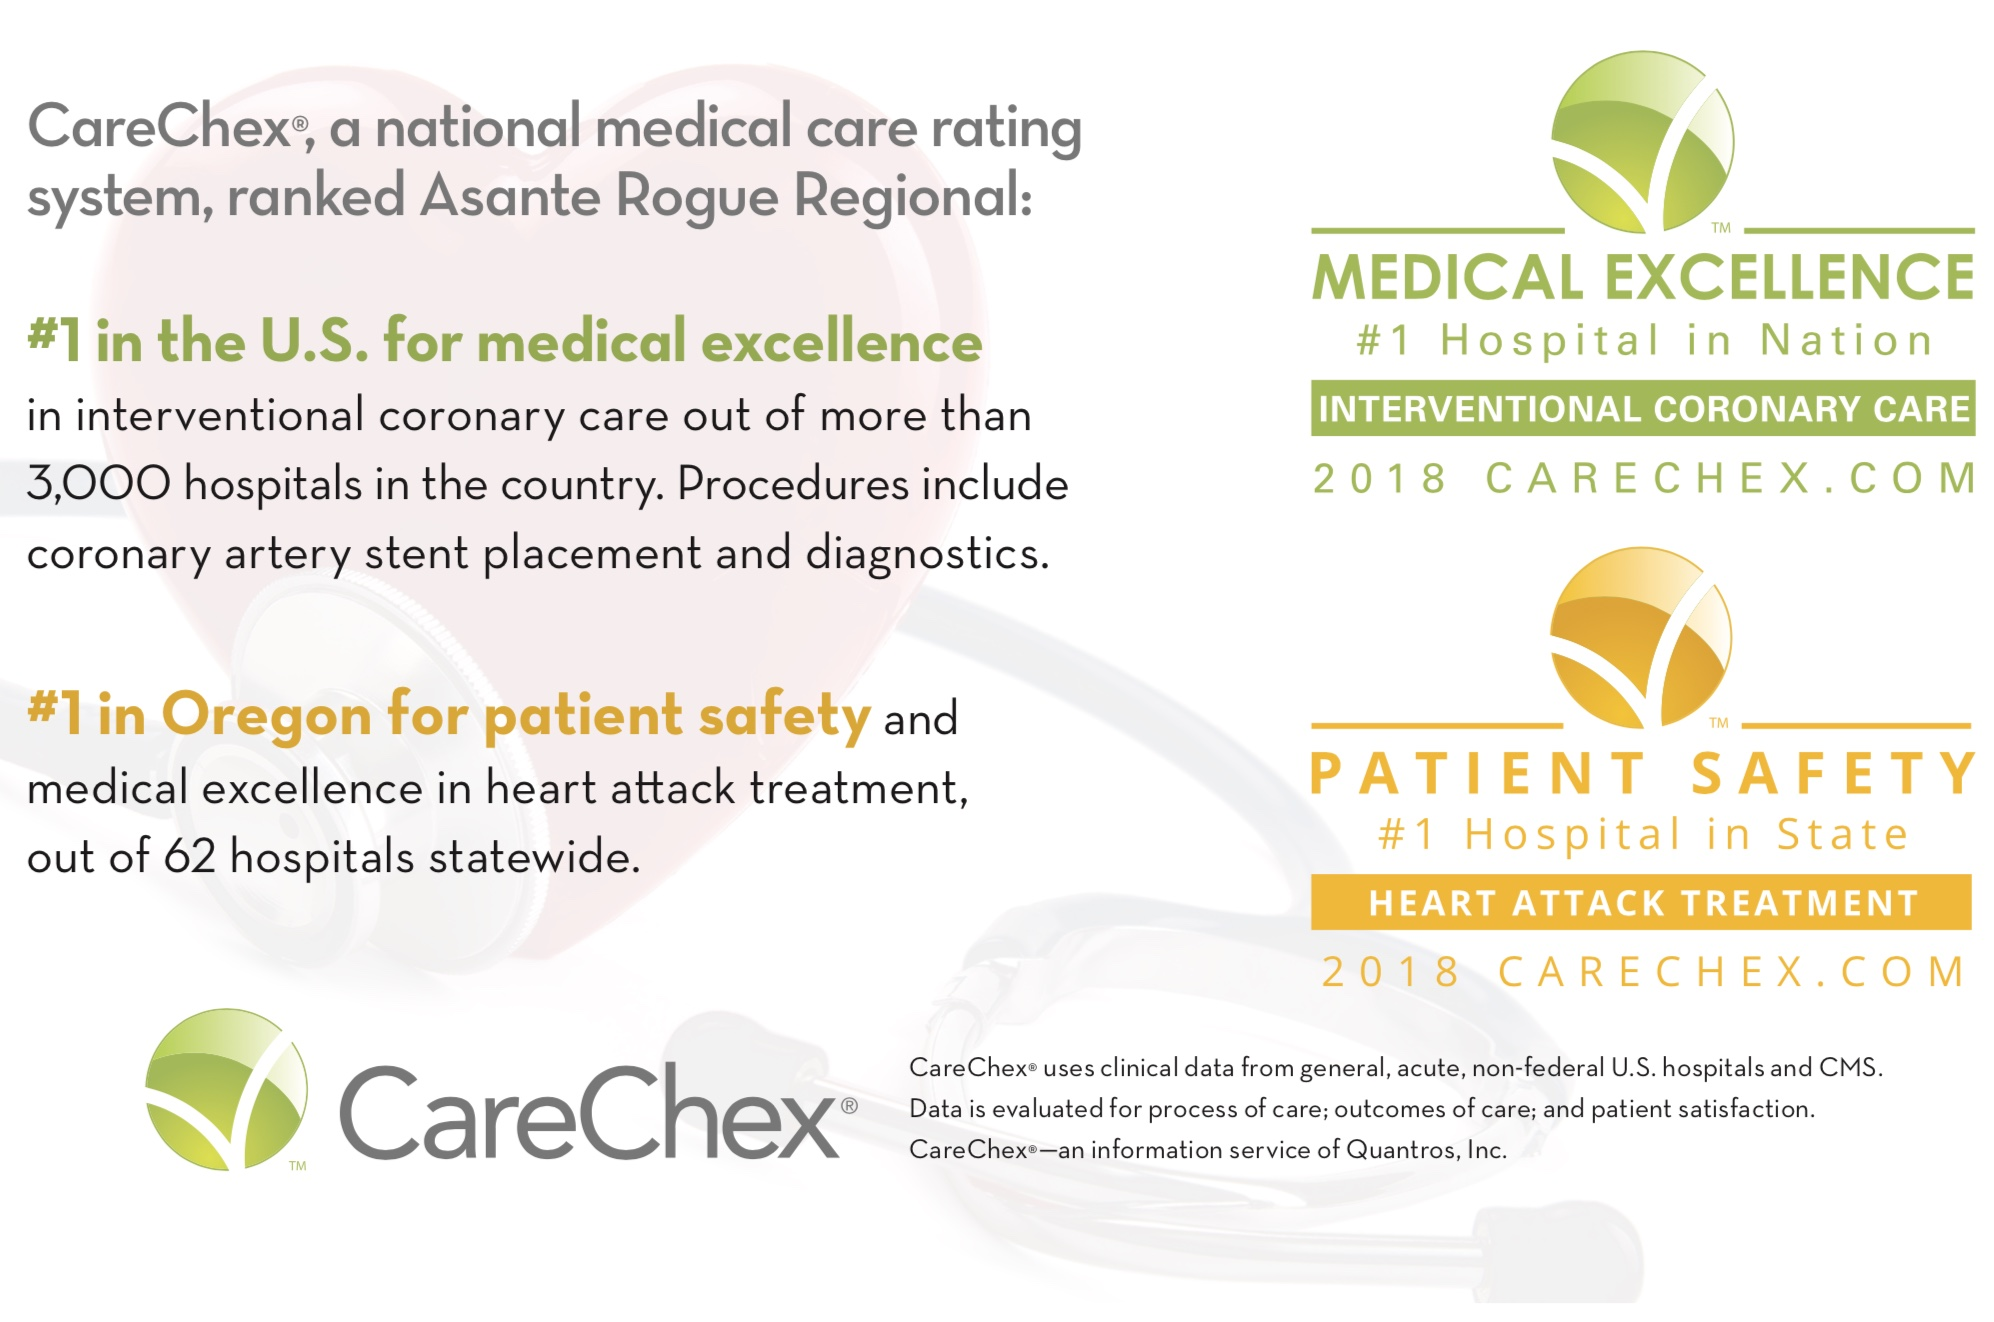 CareChex #1 Medical Excellence in interventional coronary care; #1 in Oregon for patient safety in heart attack treatment